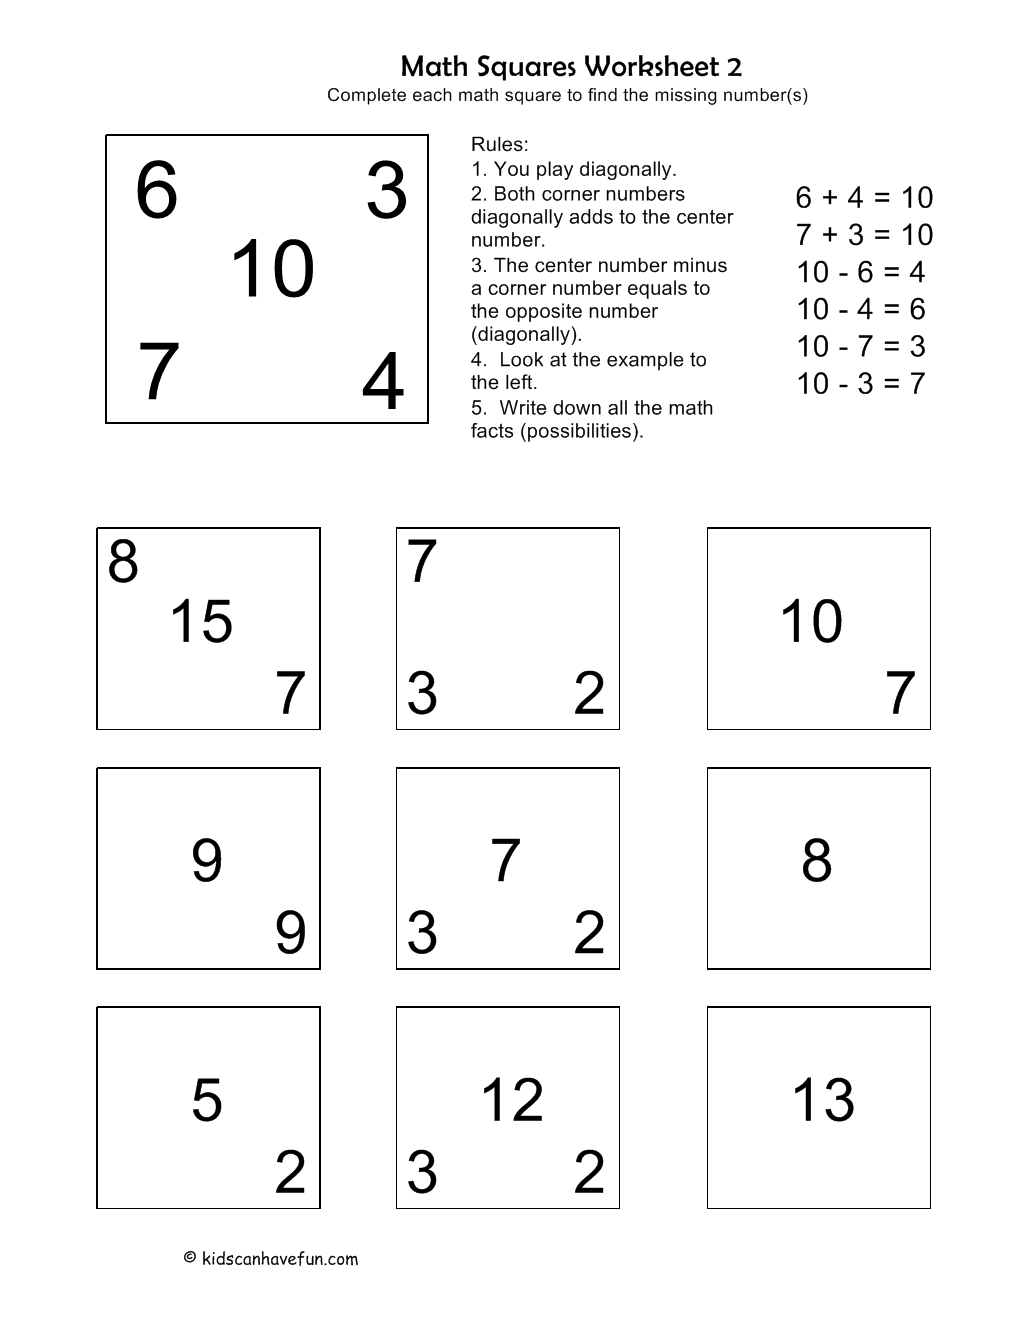 Uncategorized The Maths Worksheet math squares worksheet complete each square to find the missing numbers http